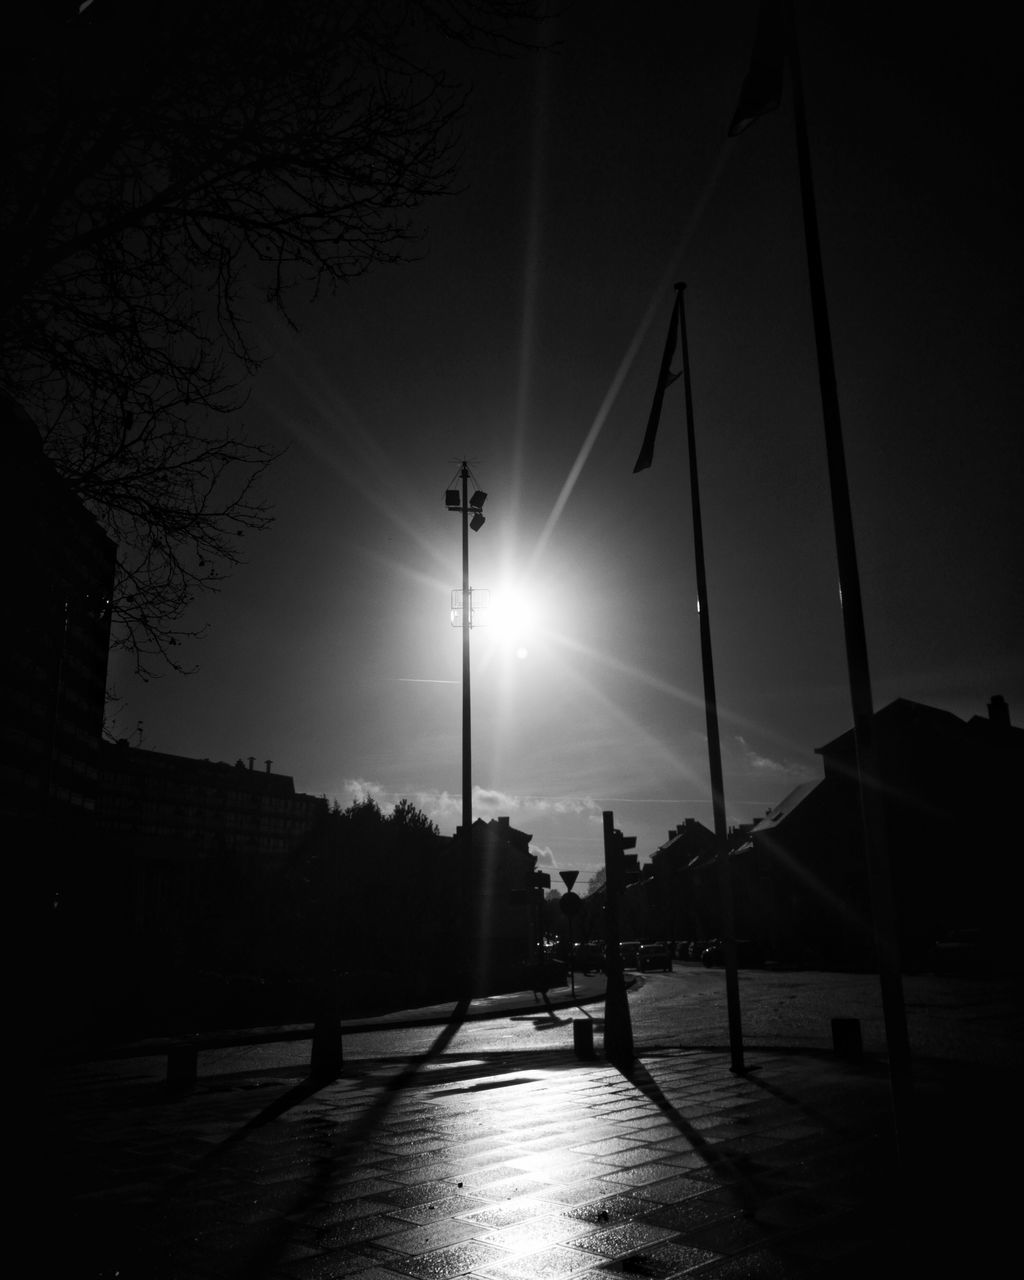 silhouette, street light, outdoors, architecture, sky, built structure, night, city, building exterior, illuminated, real people, tree, one person, clear sky, people